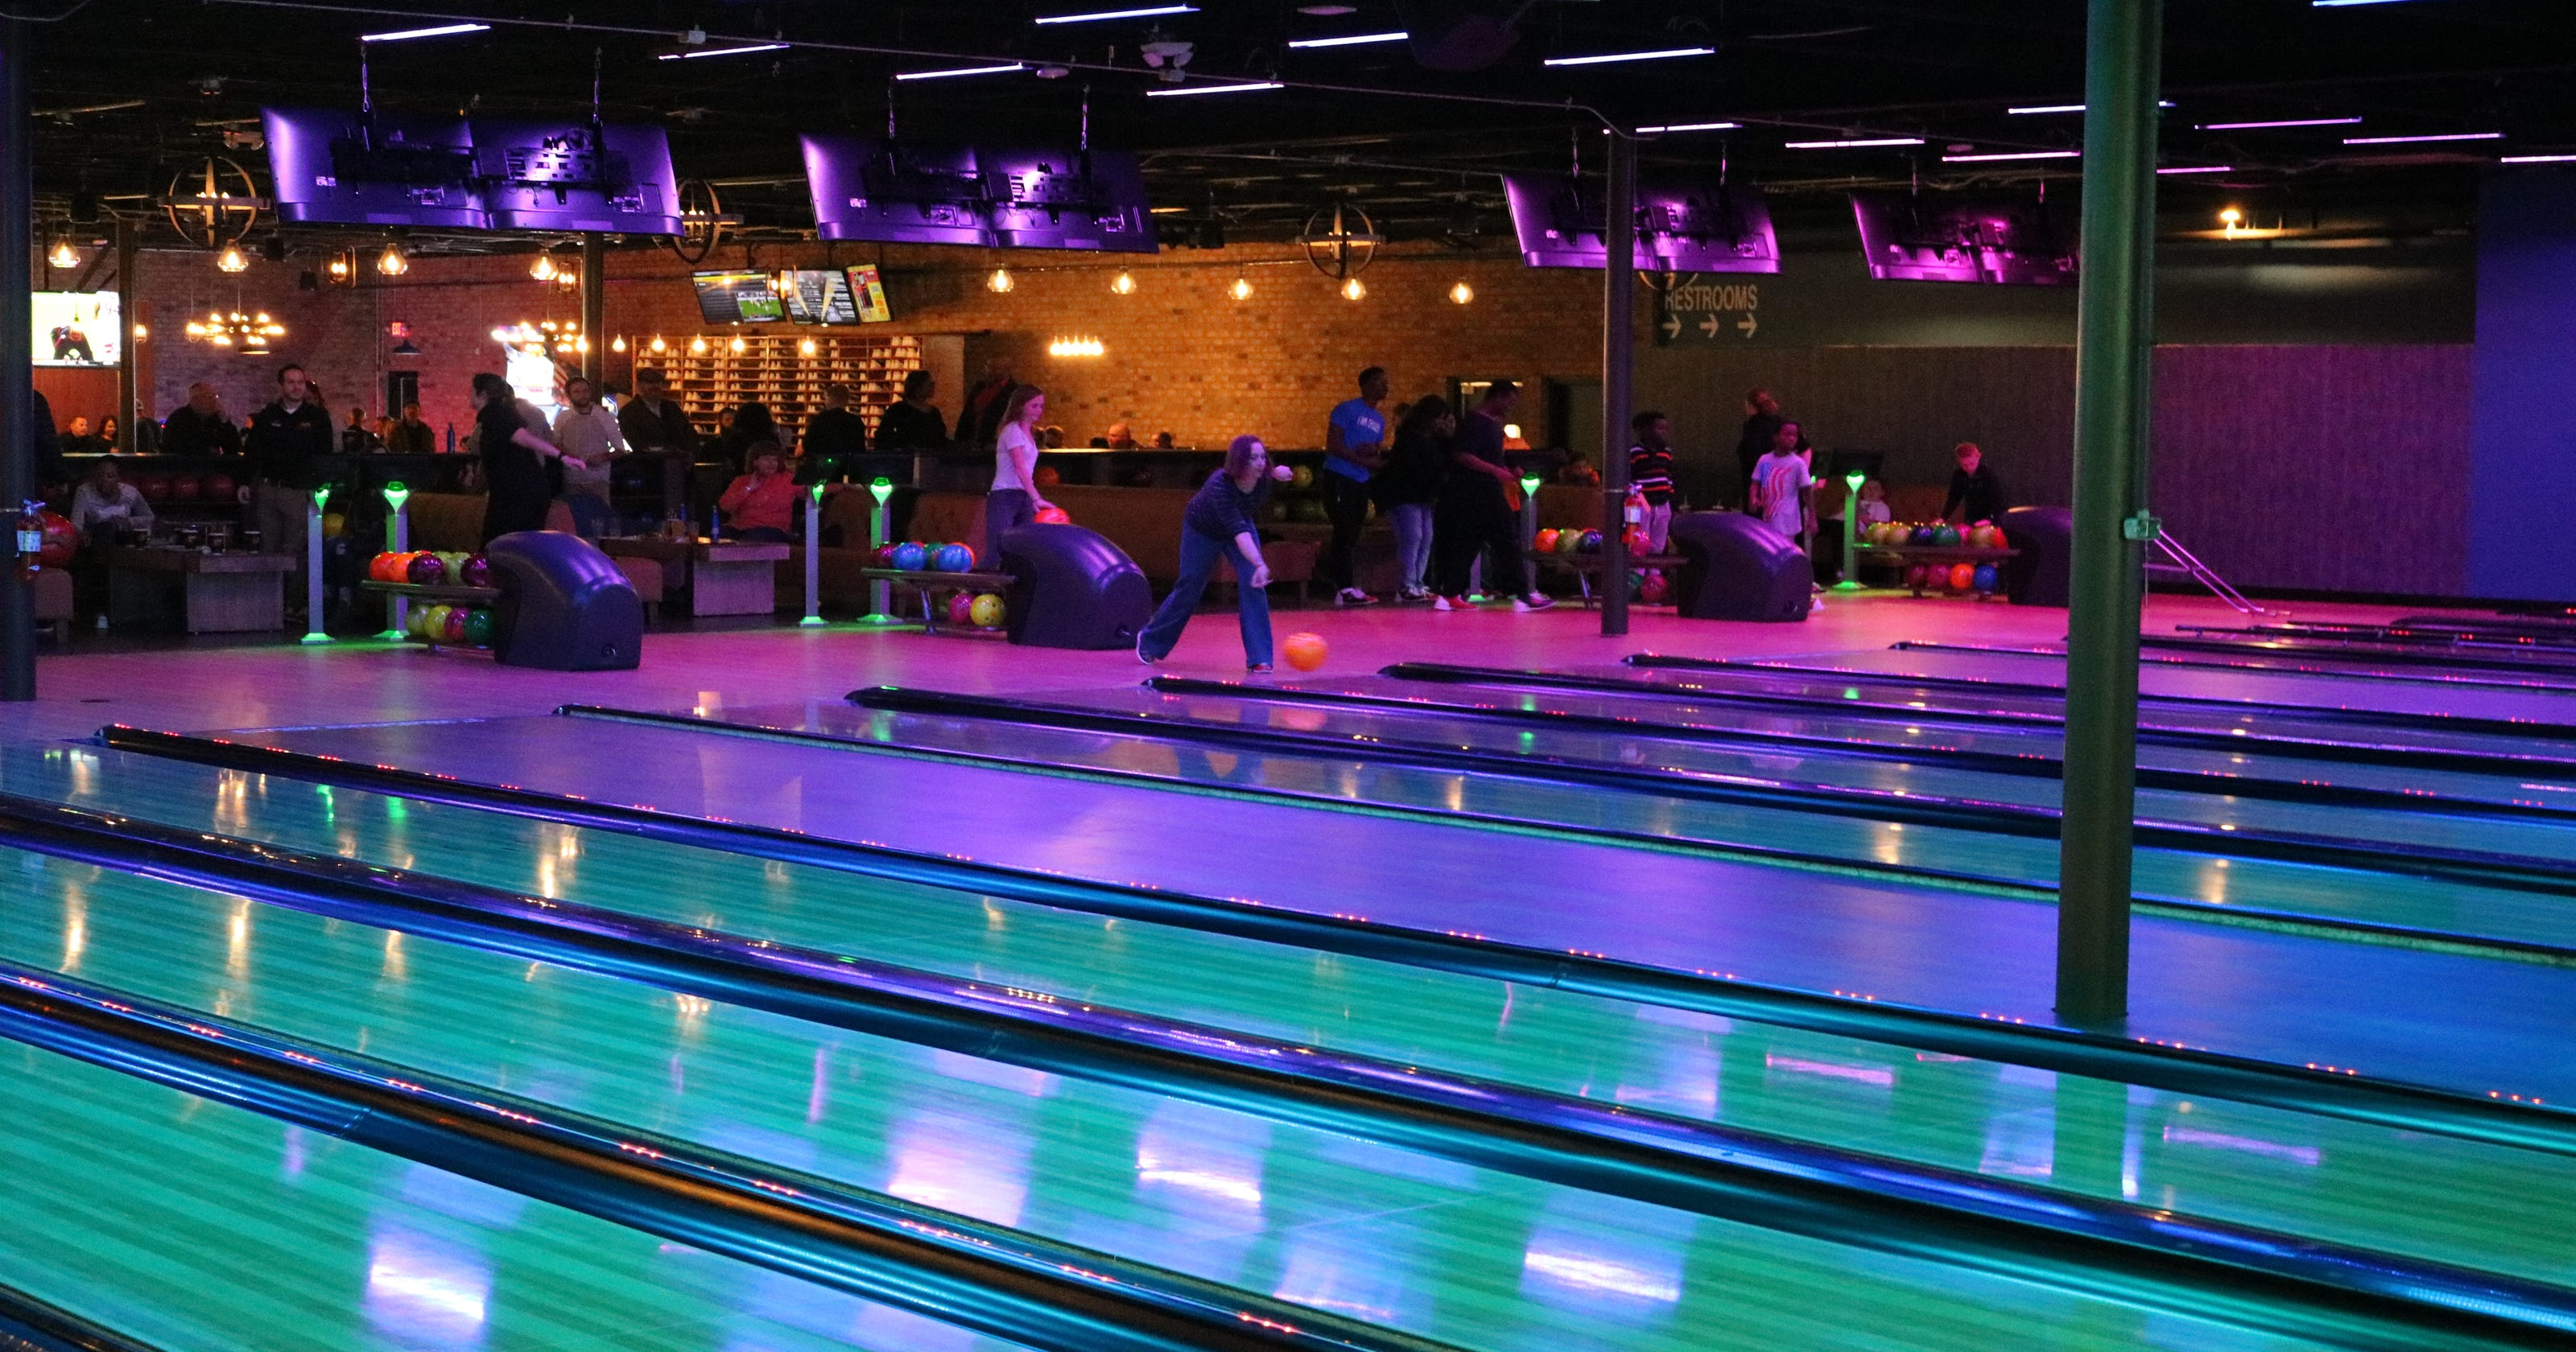 Pin Deck bowling alley in Miami Township set to open Nov  22